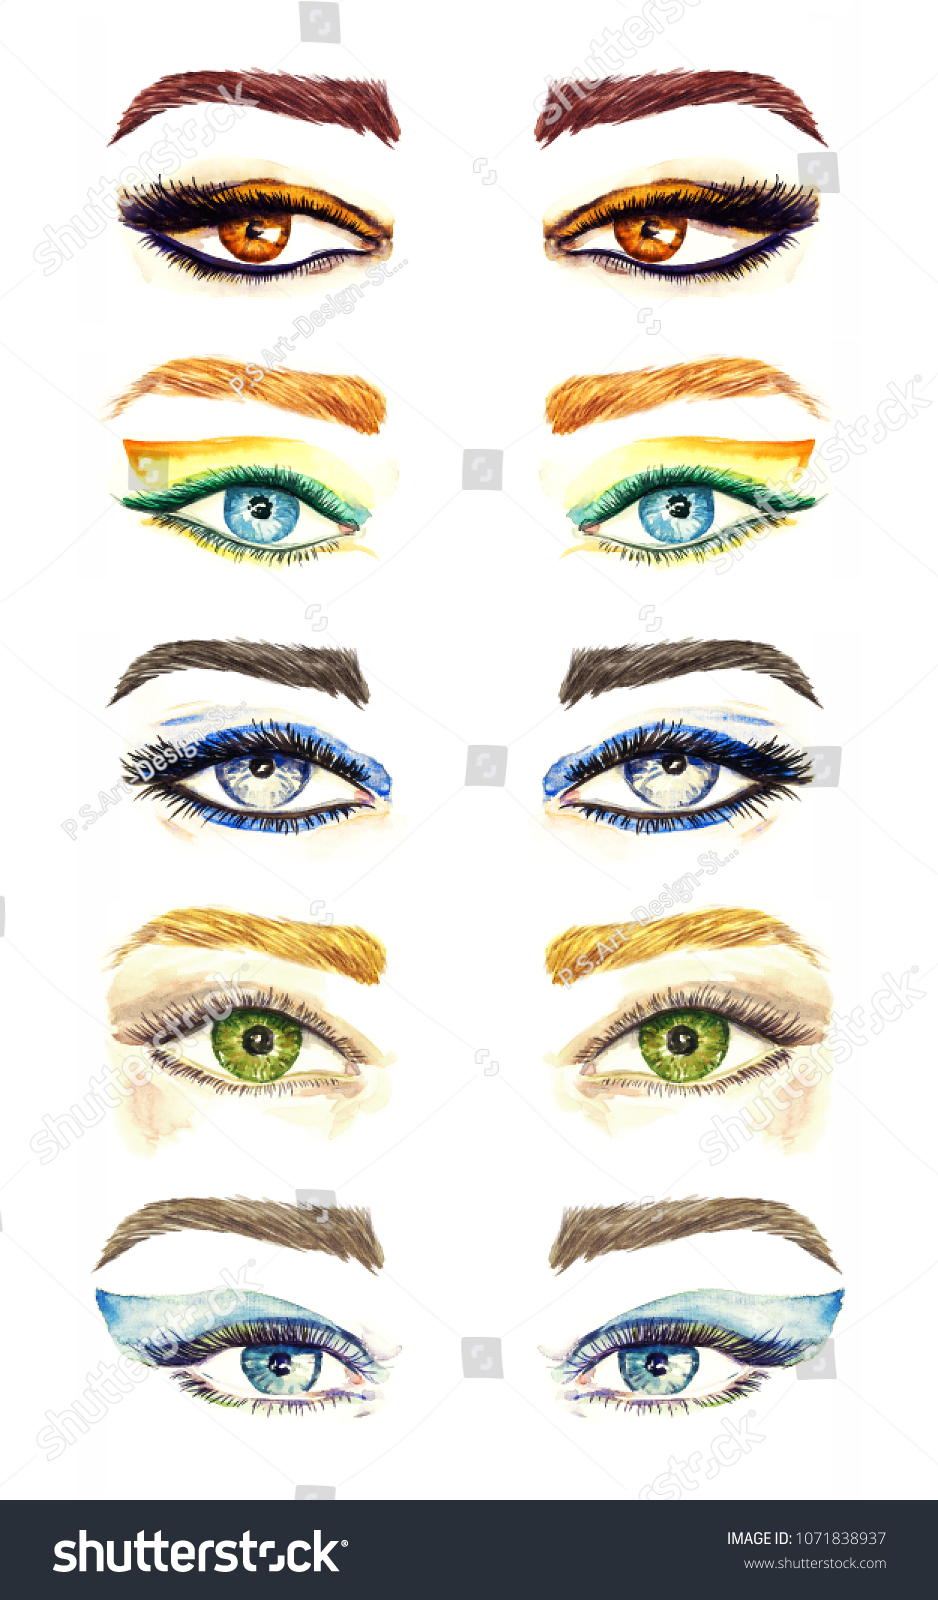 Royalty Free Stock Illustration Of Variety Eyes Shapes Different